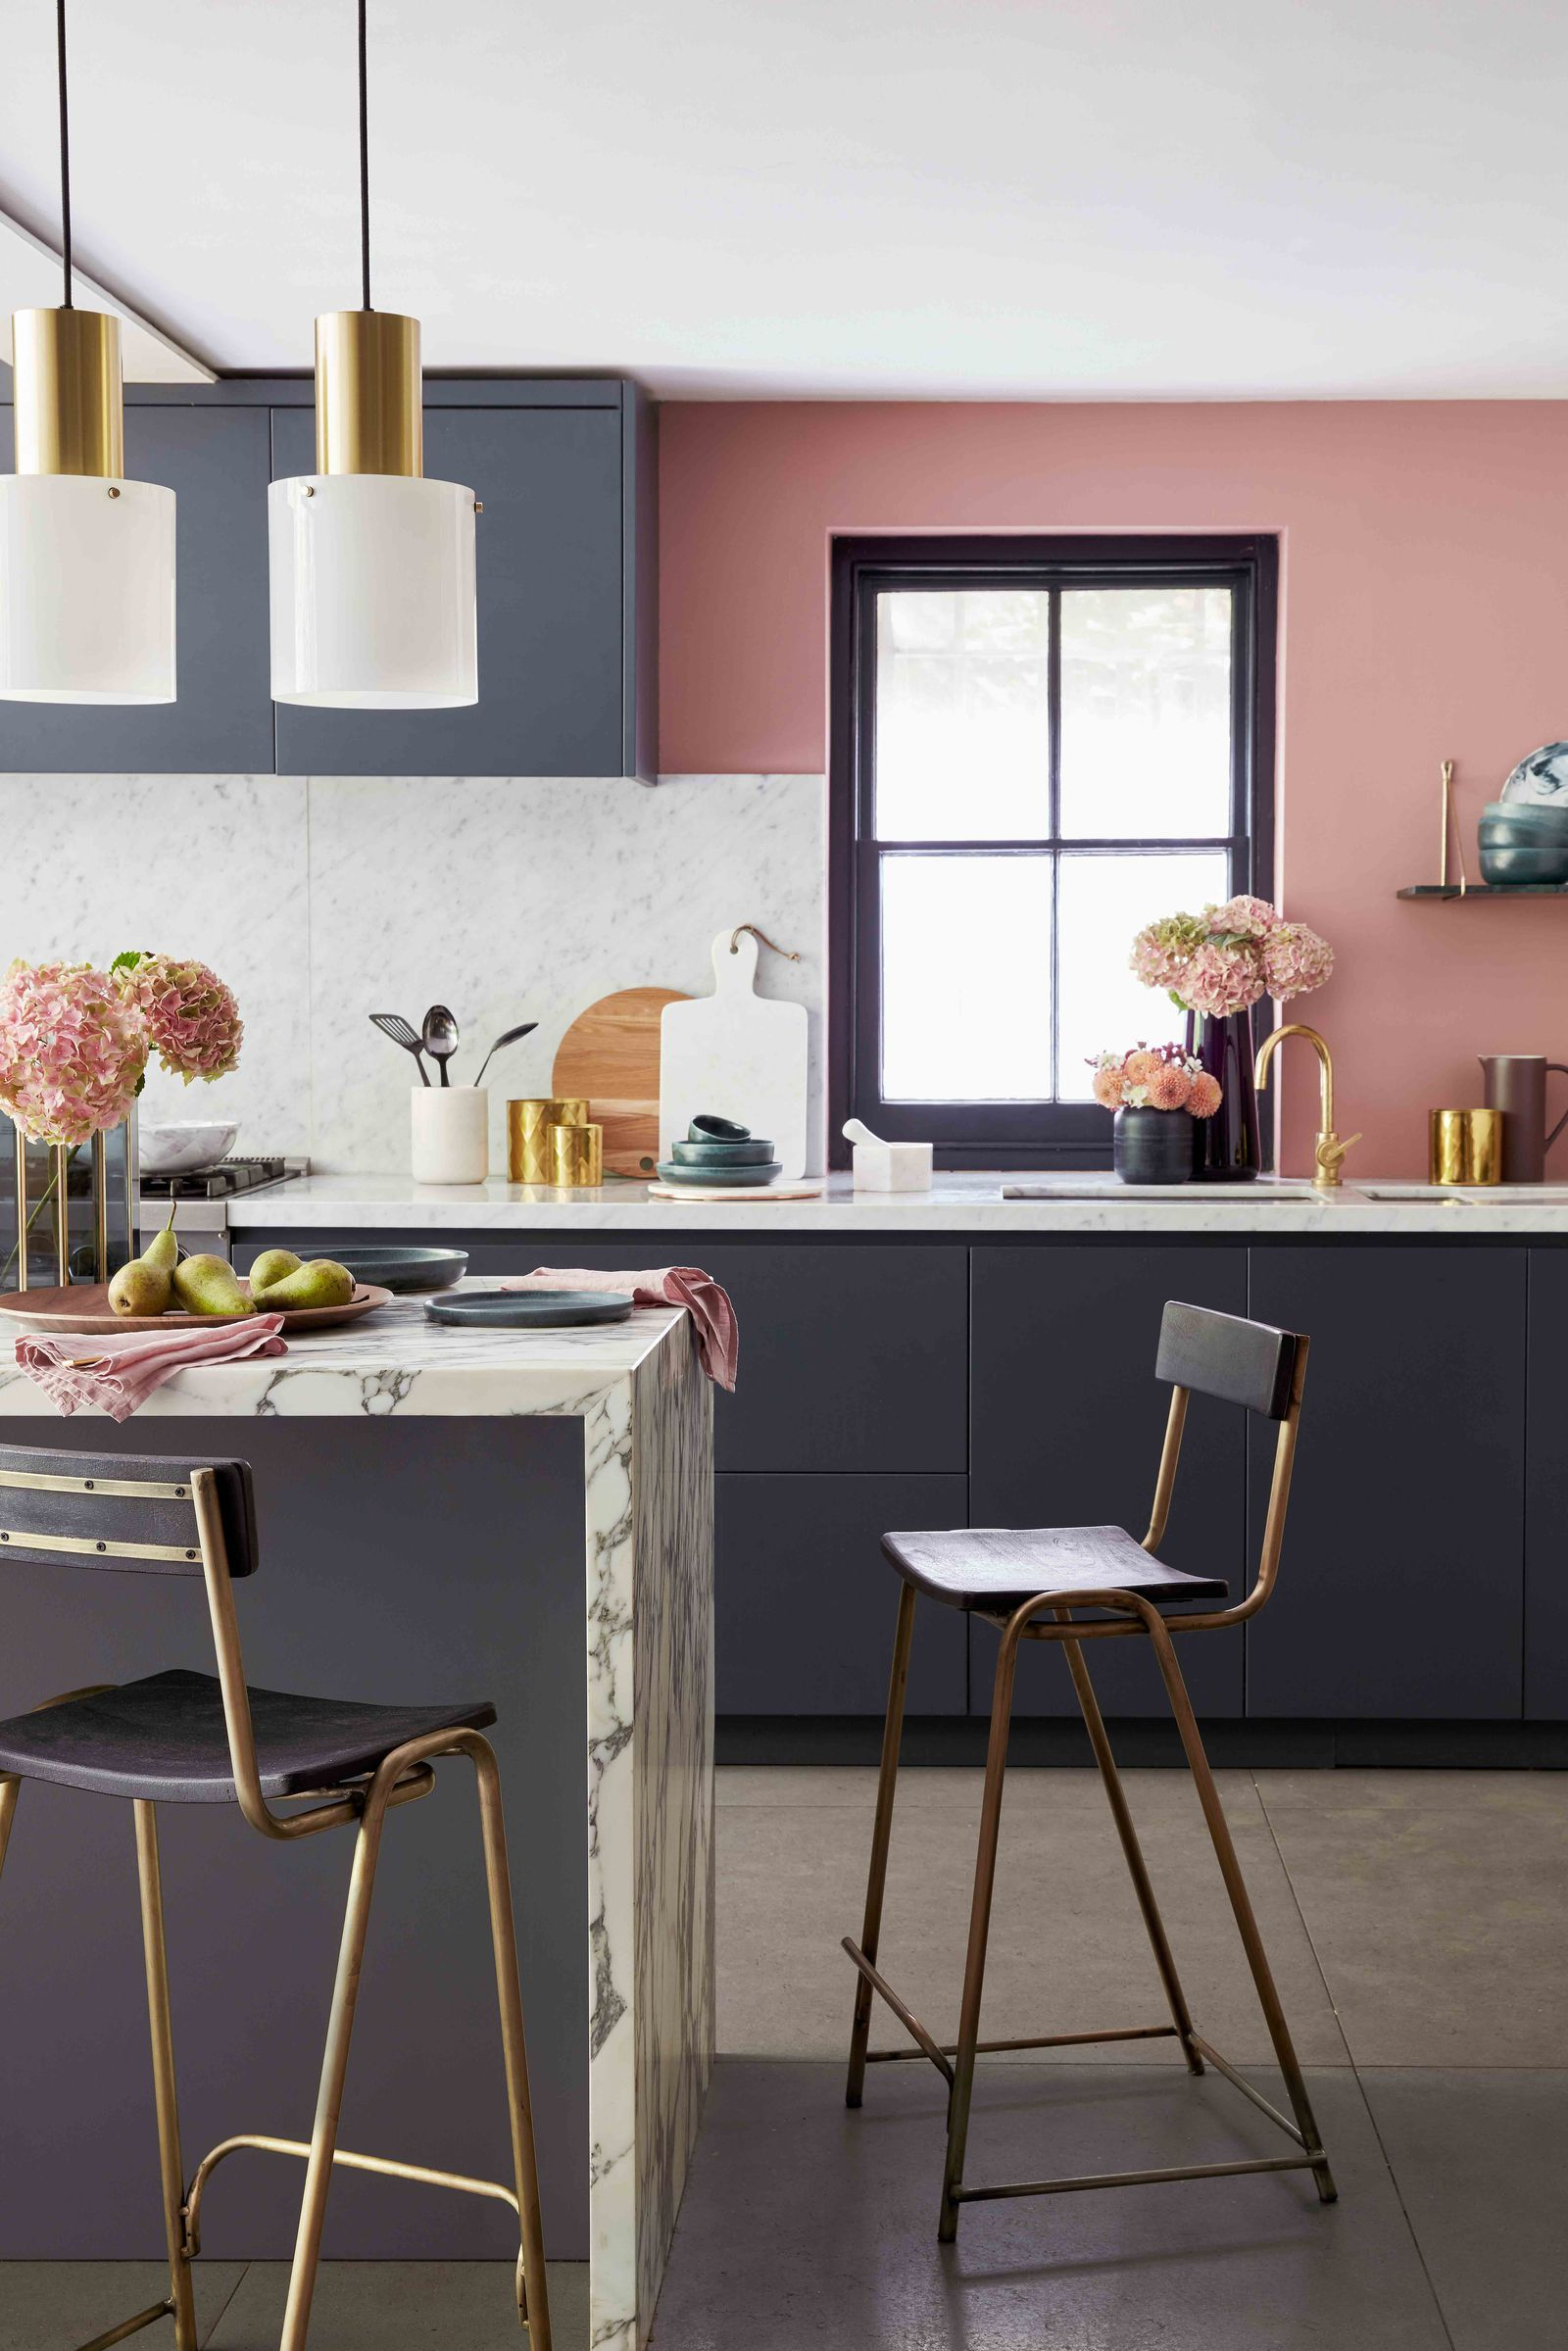 Best 20 Kitchen Trends For 2020 You Need To Know About Quirky 400 x 300